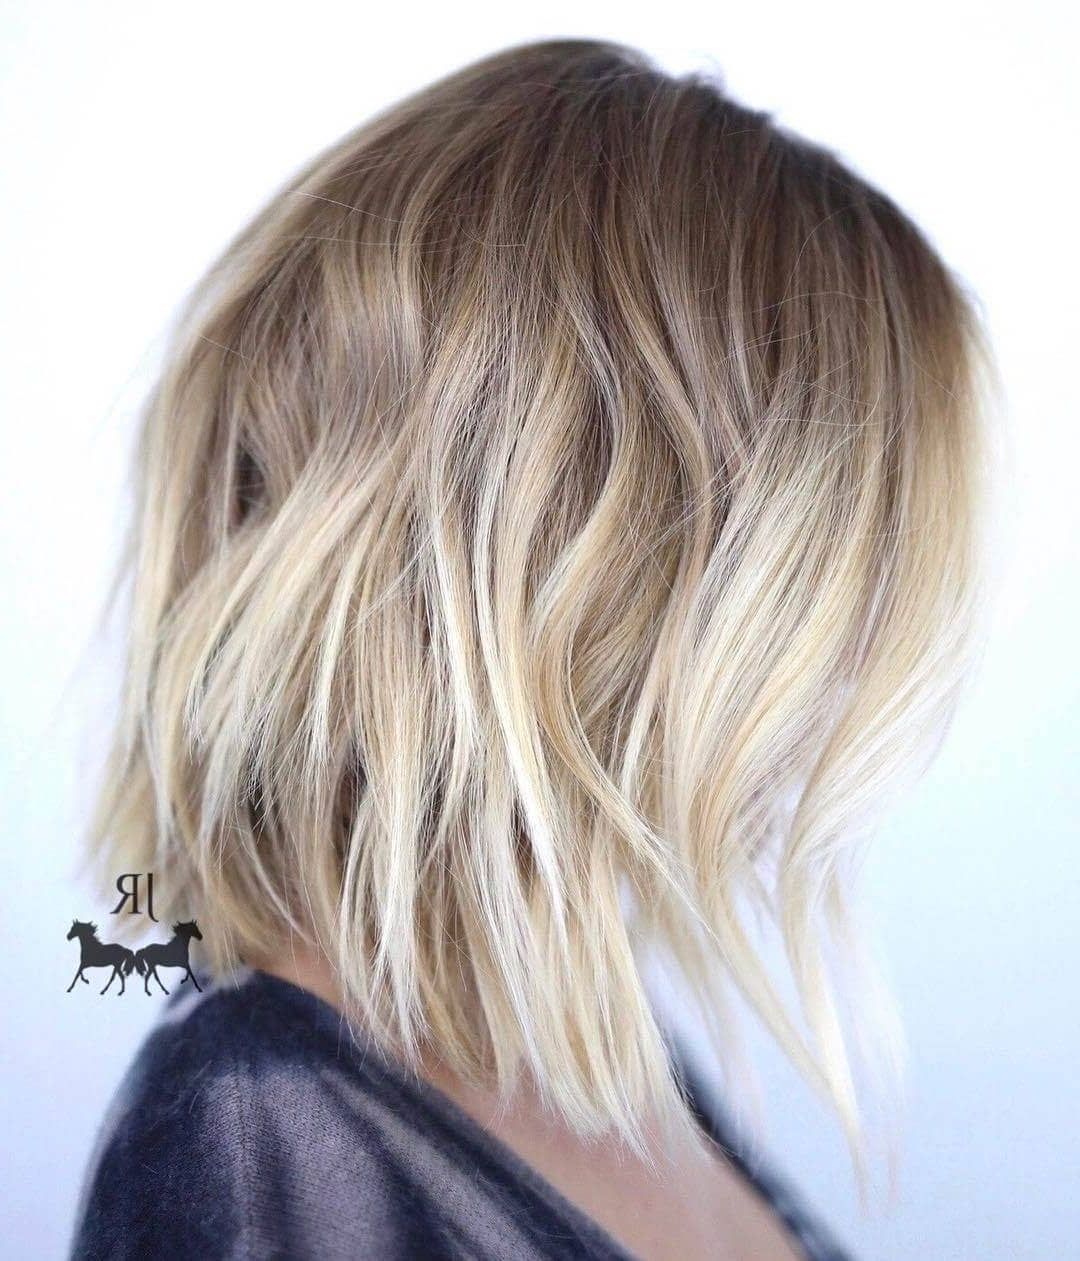 50 Fresh Short Blonde Hair Ideas To Update Your Style In 2018 Within Short Wavy Blonde Balayage Bob Hairstyles (View 7 of 20)